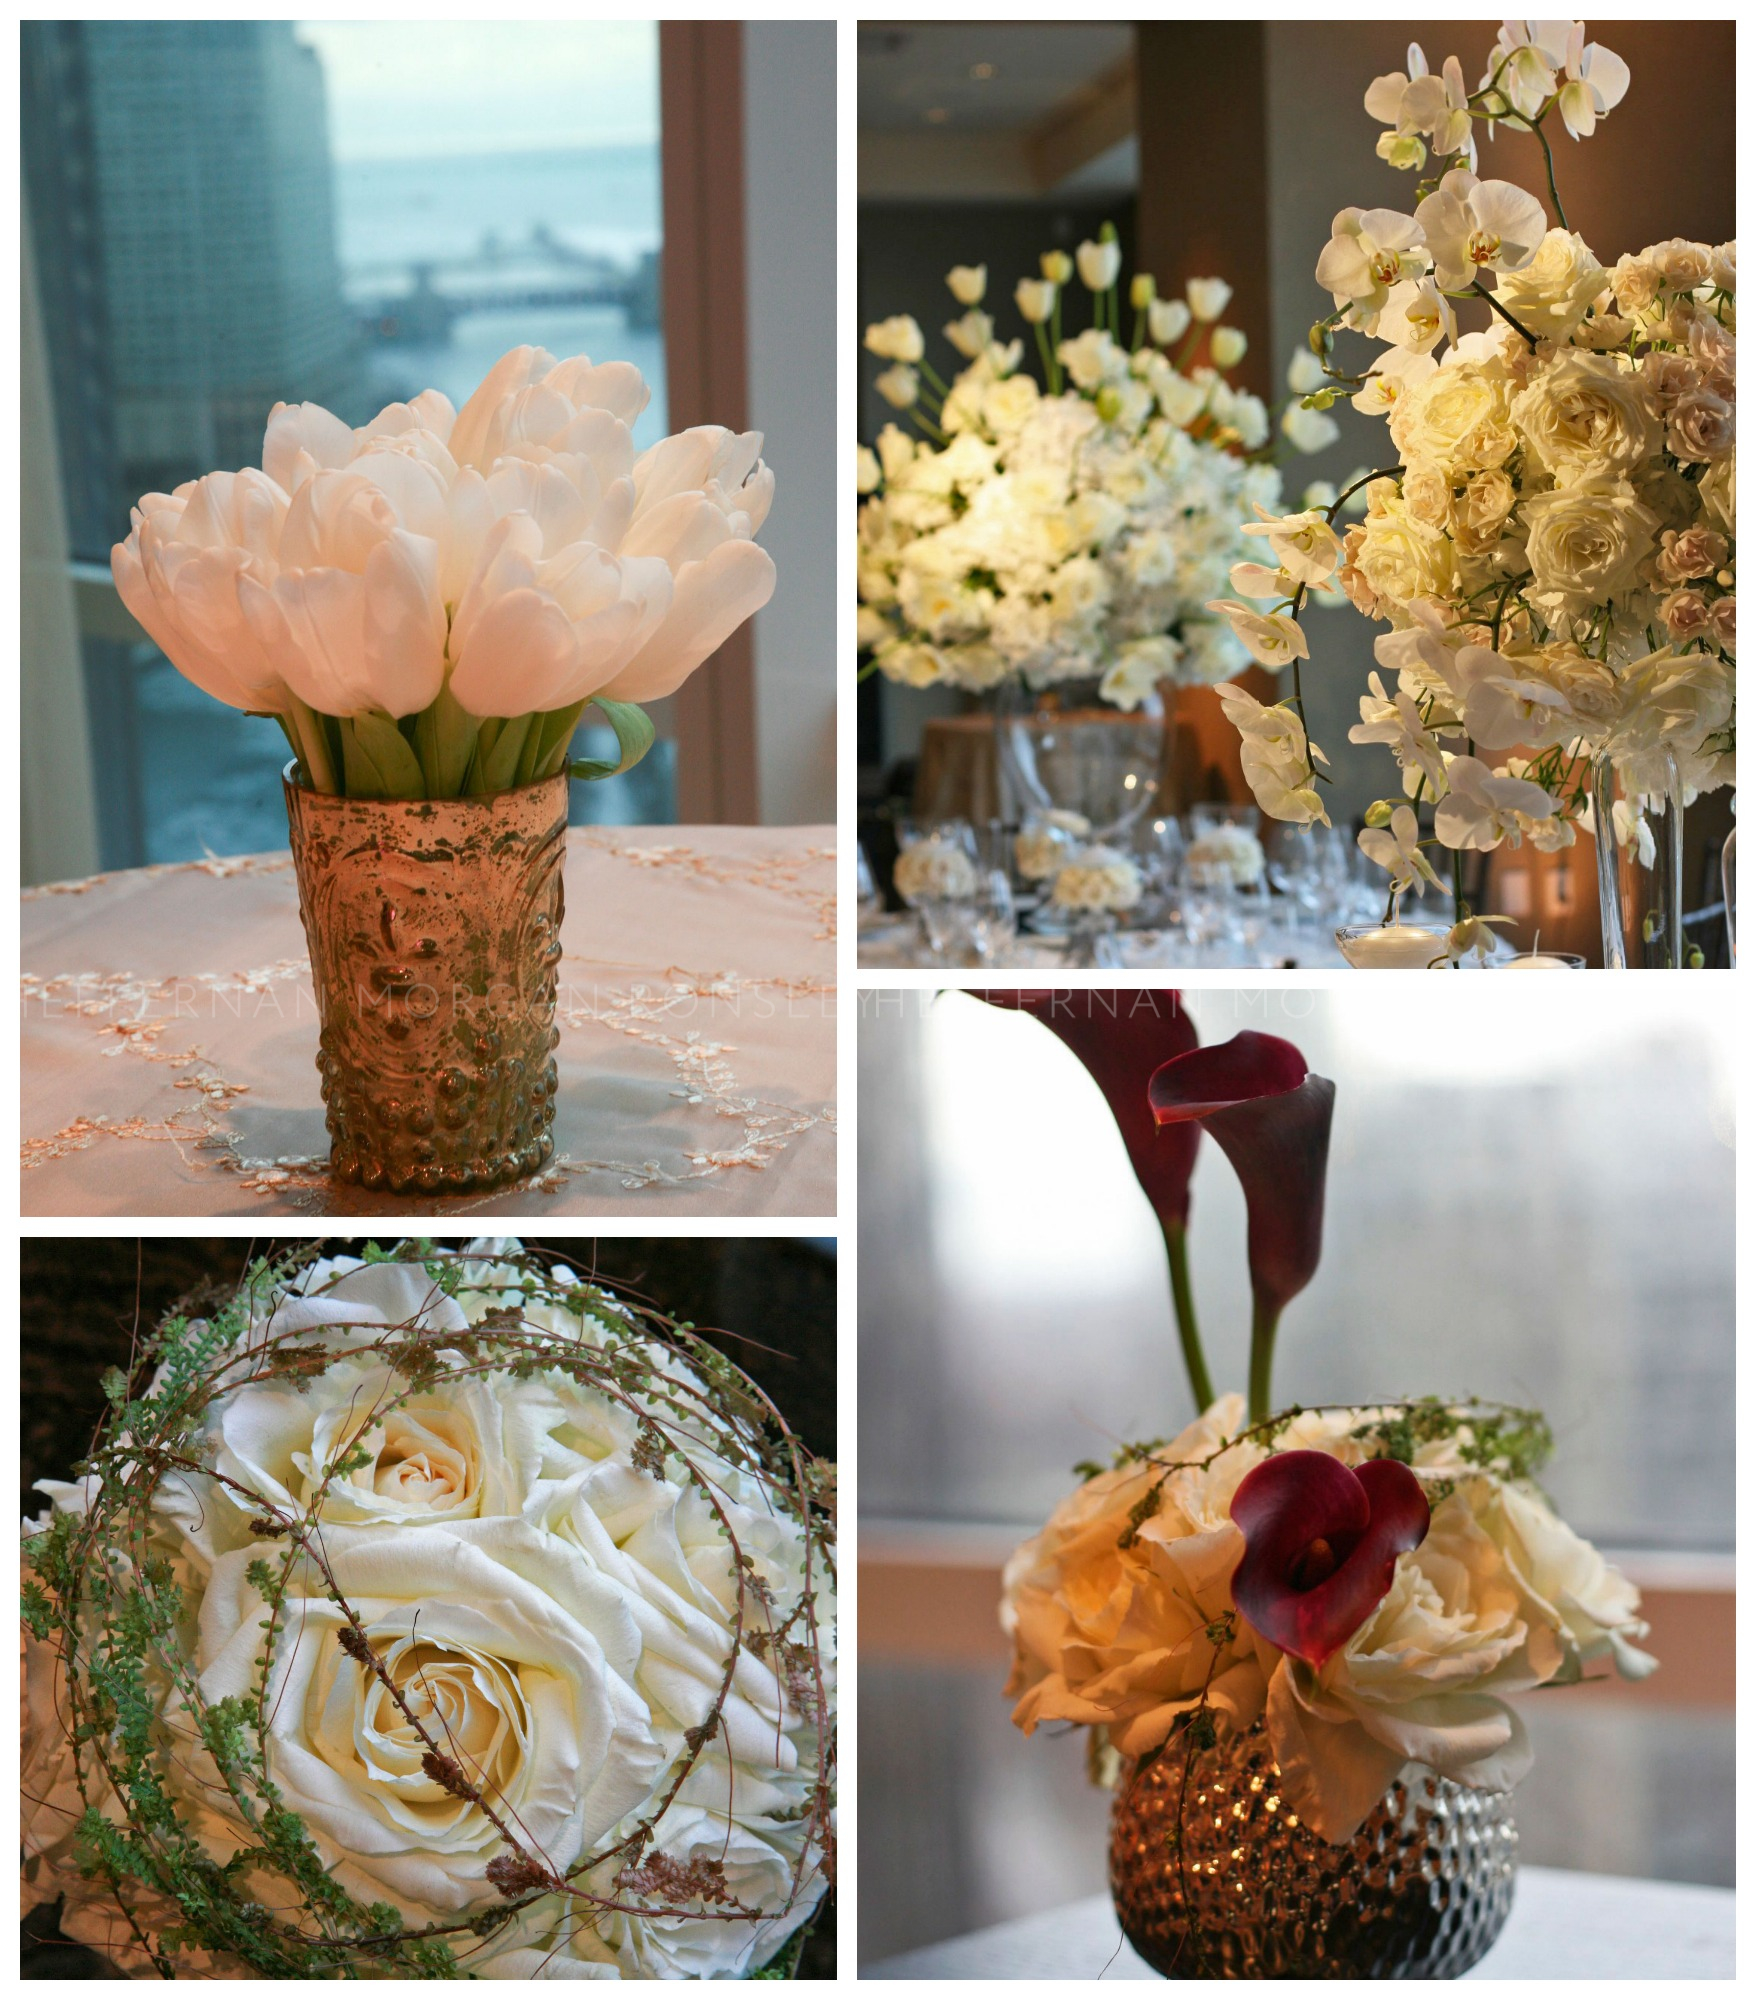 A sampling of floral design from the 2008 event hosted by the Trump International Hotel and Tower.